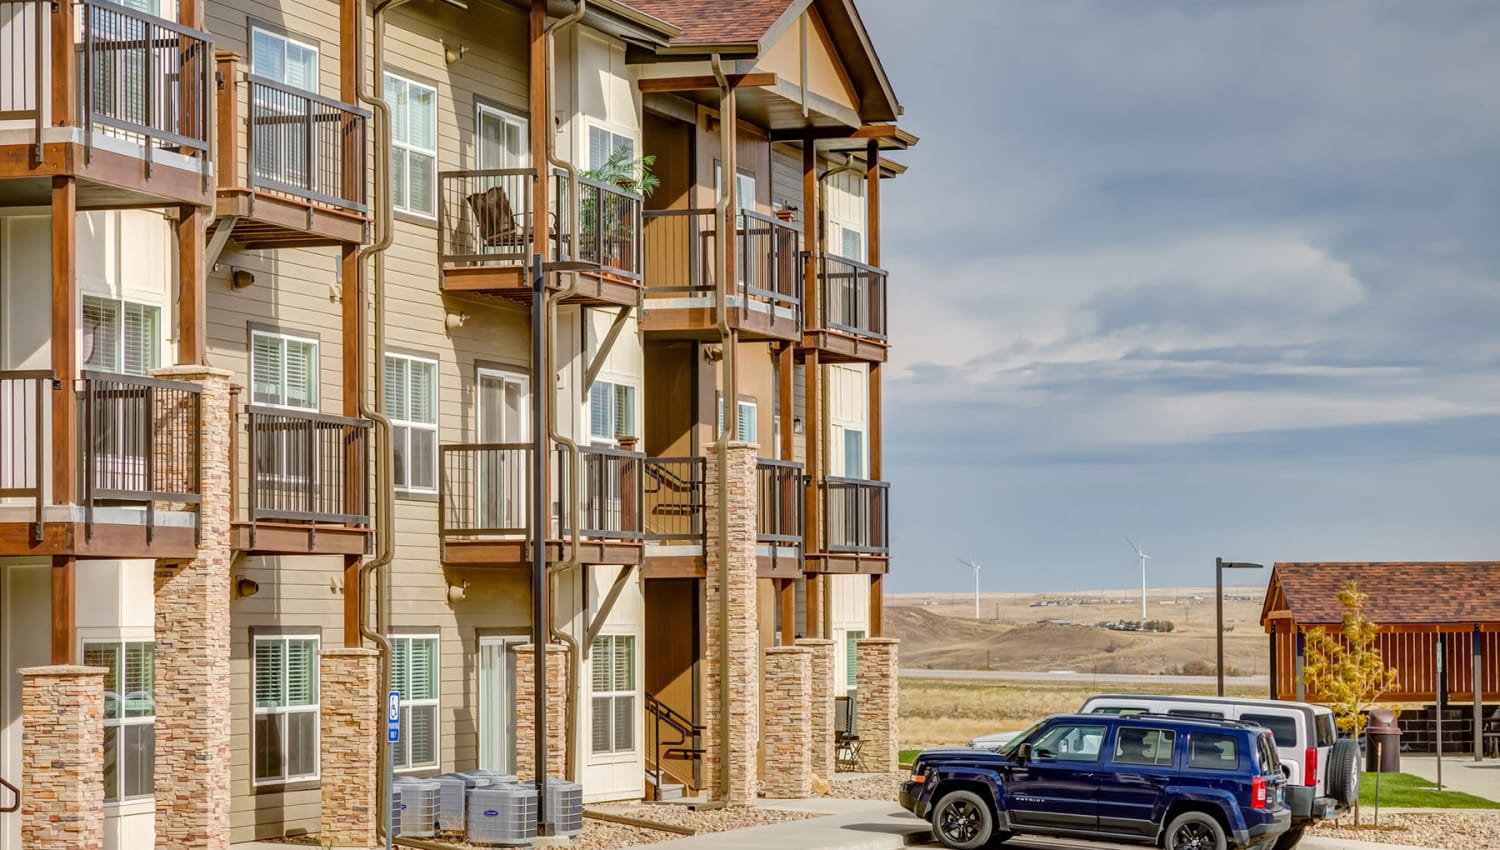 Plenty of parking outside resident buildings at Granite 550 in Casper, Wyoming